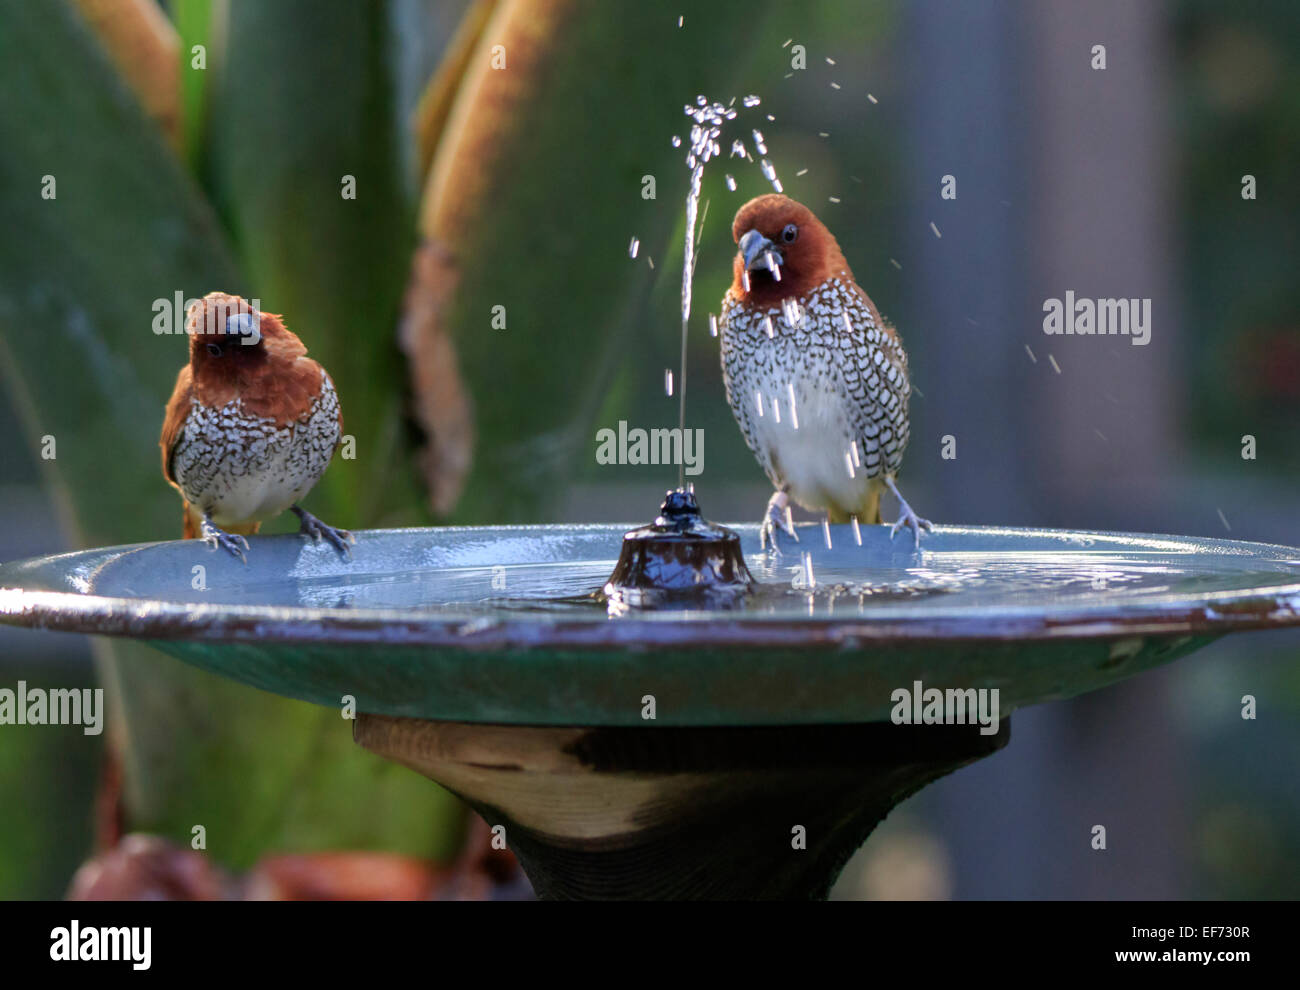 Scaly-breasted Munia, Lonchura punctulata enjoying the water in a birdbath fountain - Stock Image